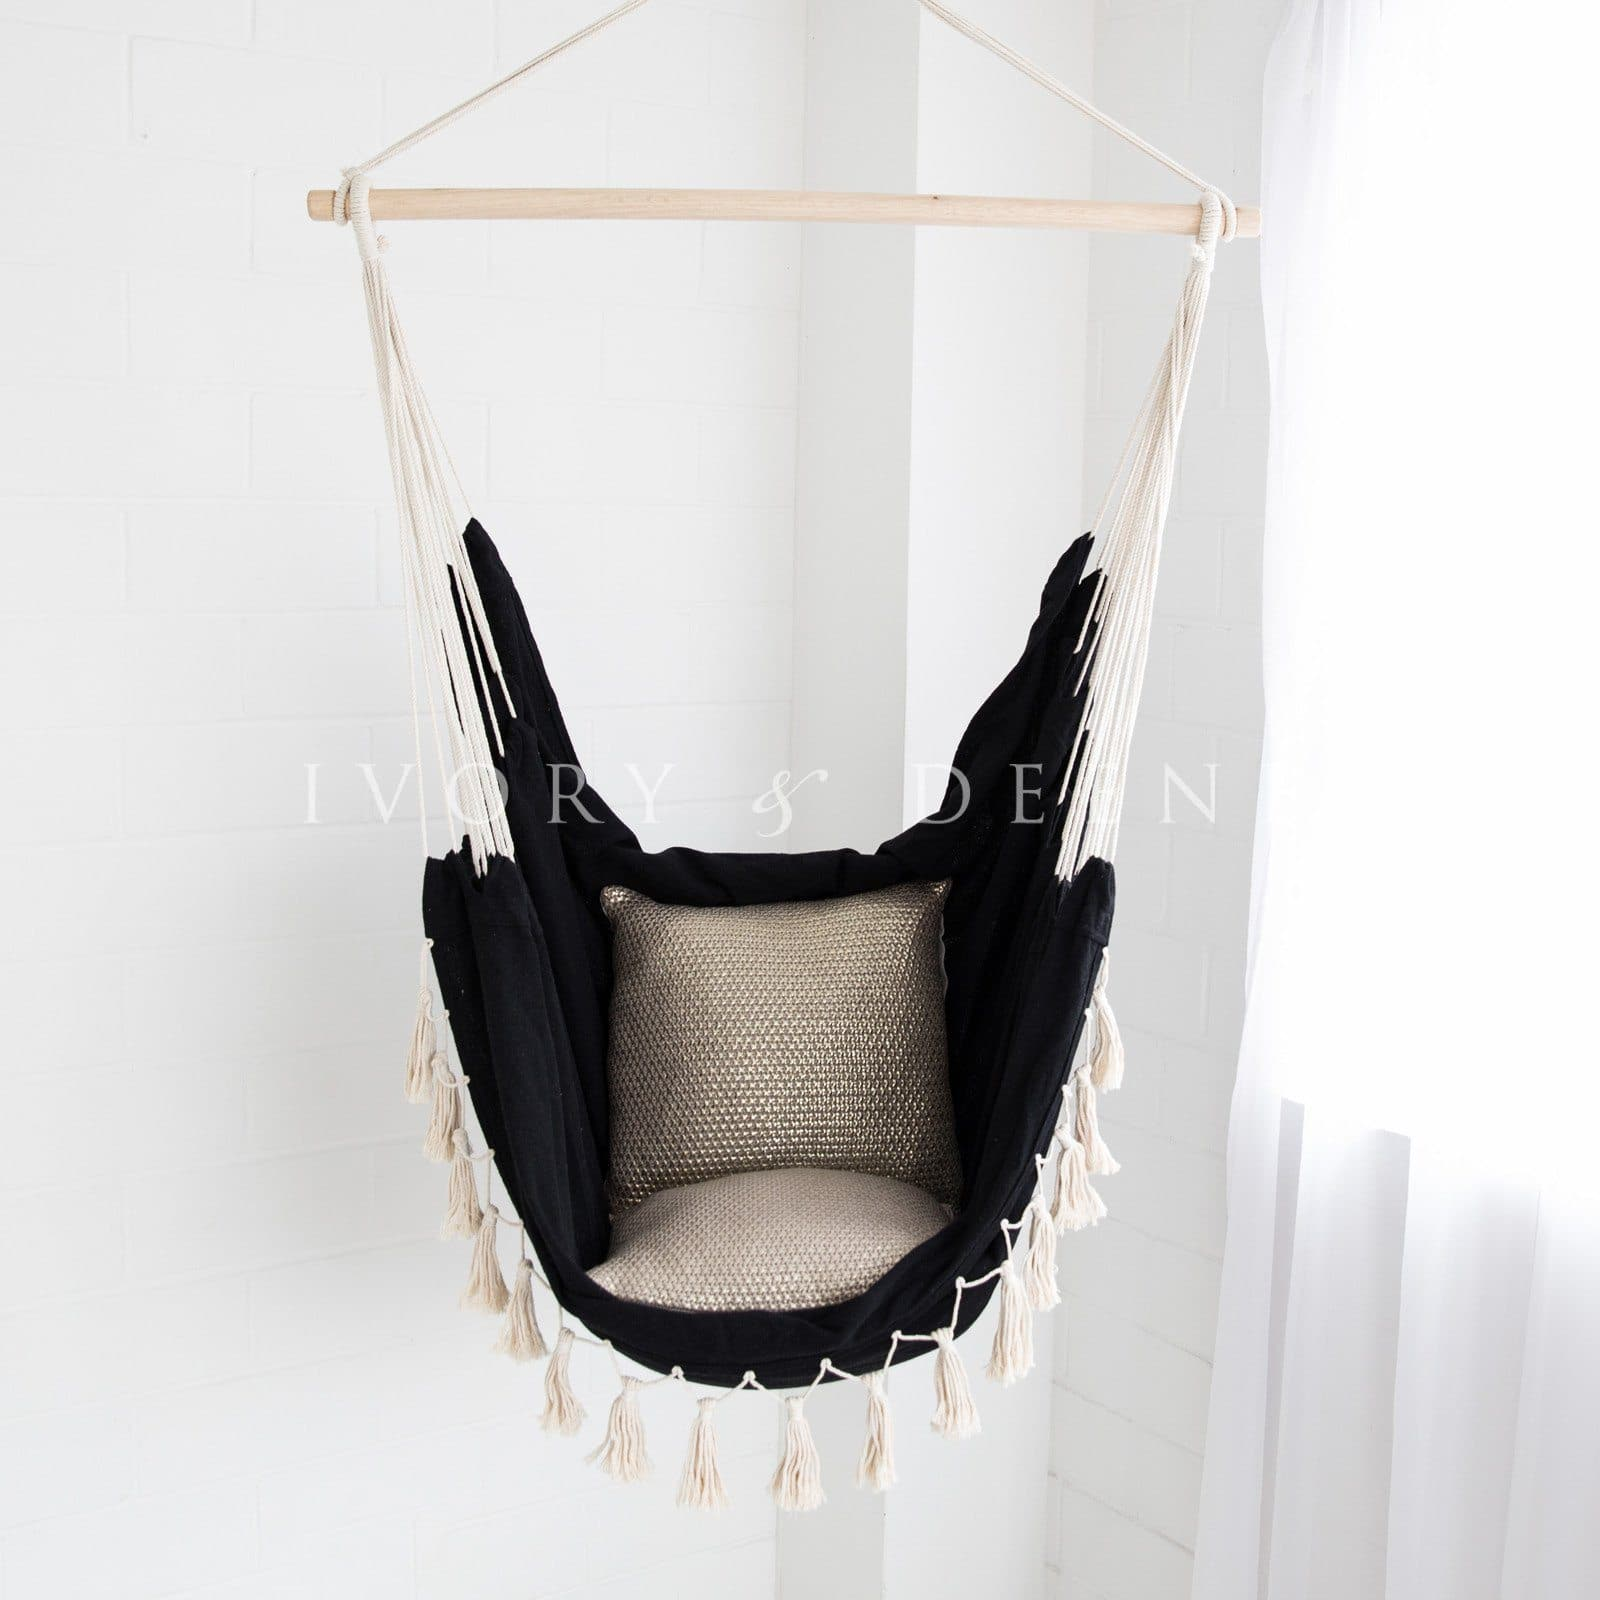 black hammock with cream tassels and gold metallic cushions on white background